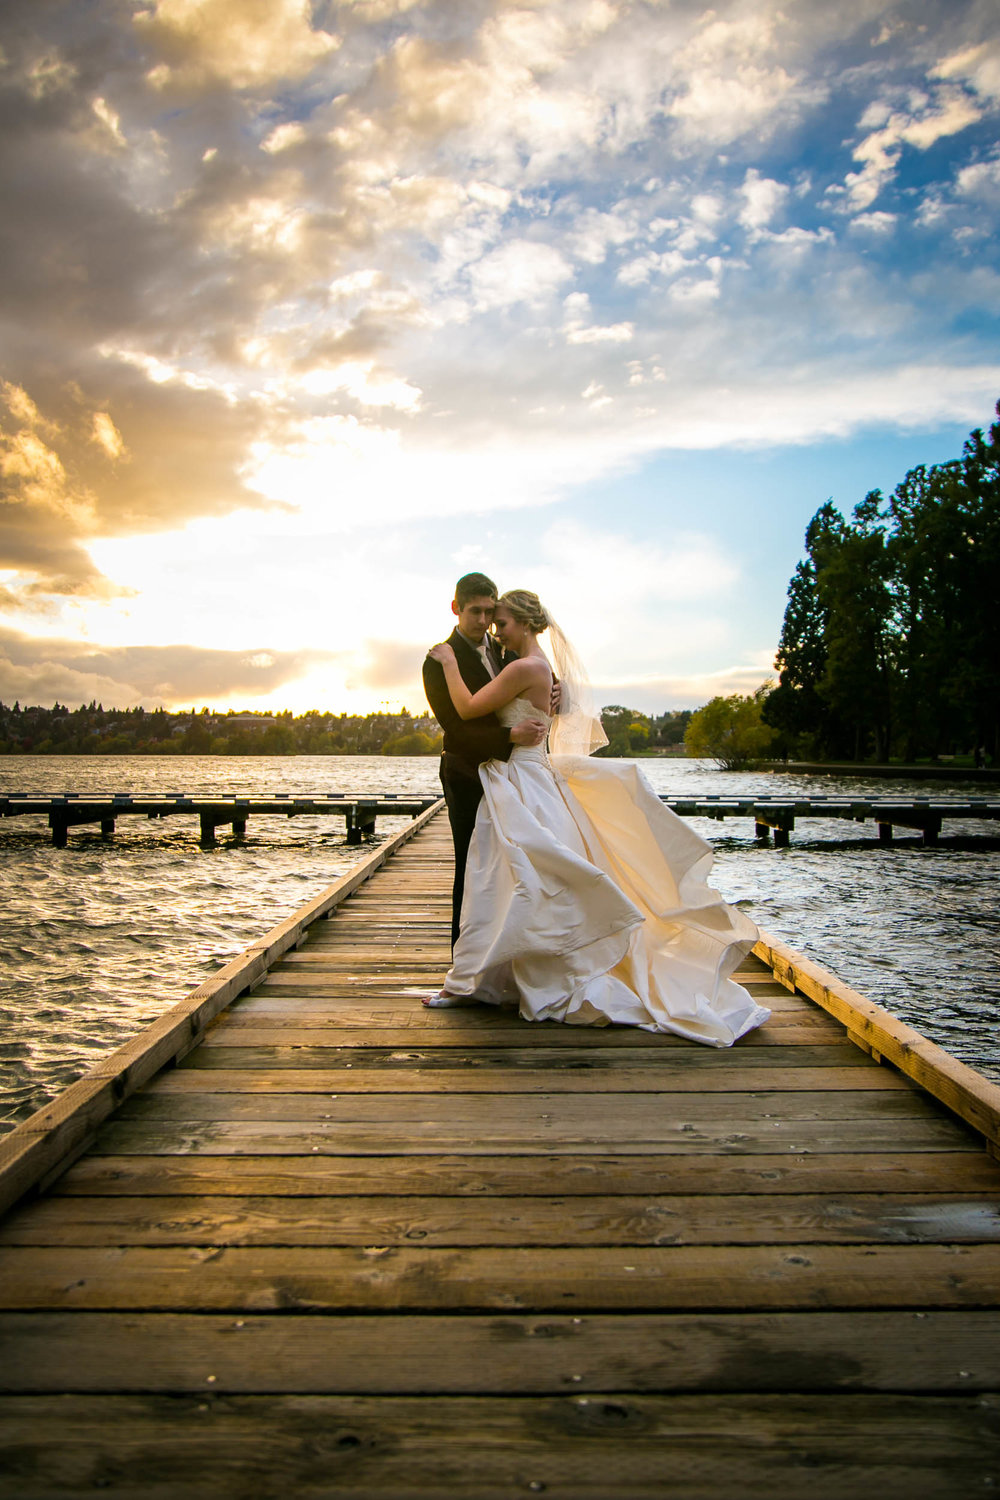 Seattle Community Church Wedding Photography | By G. Lin Photography | Greenlake Park Bridal Photo